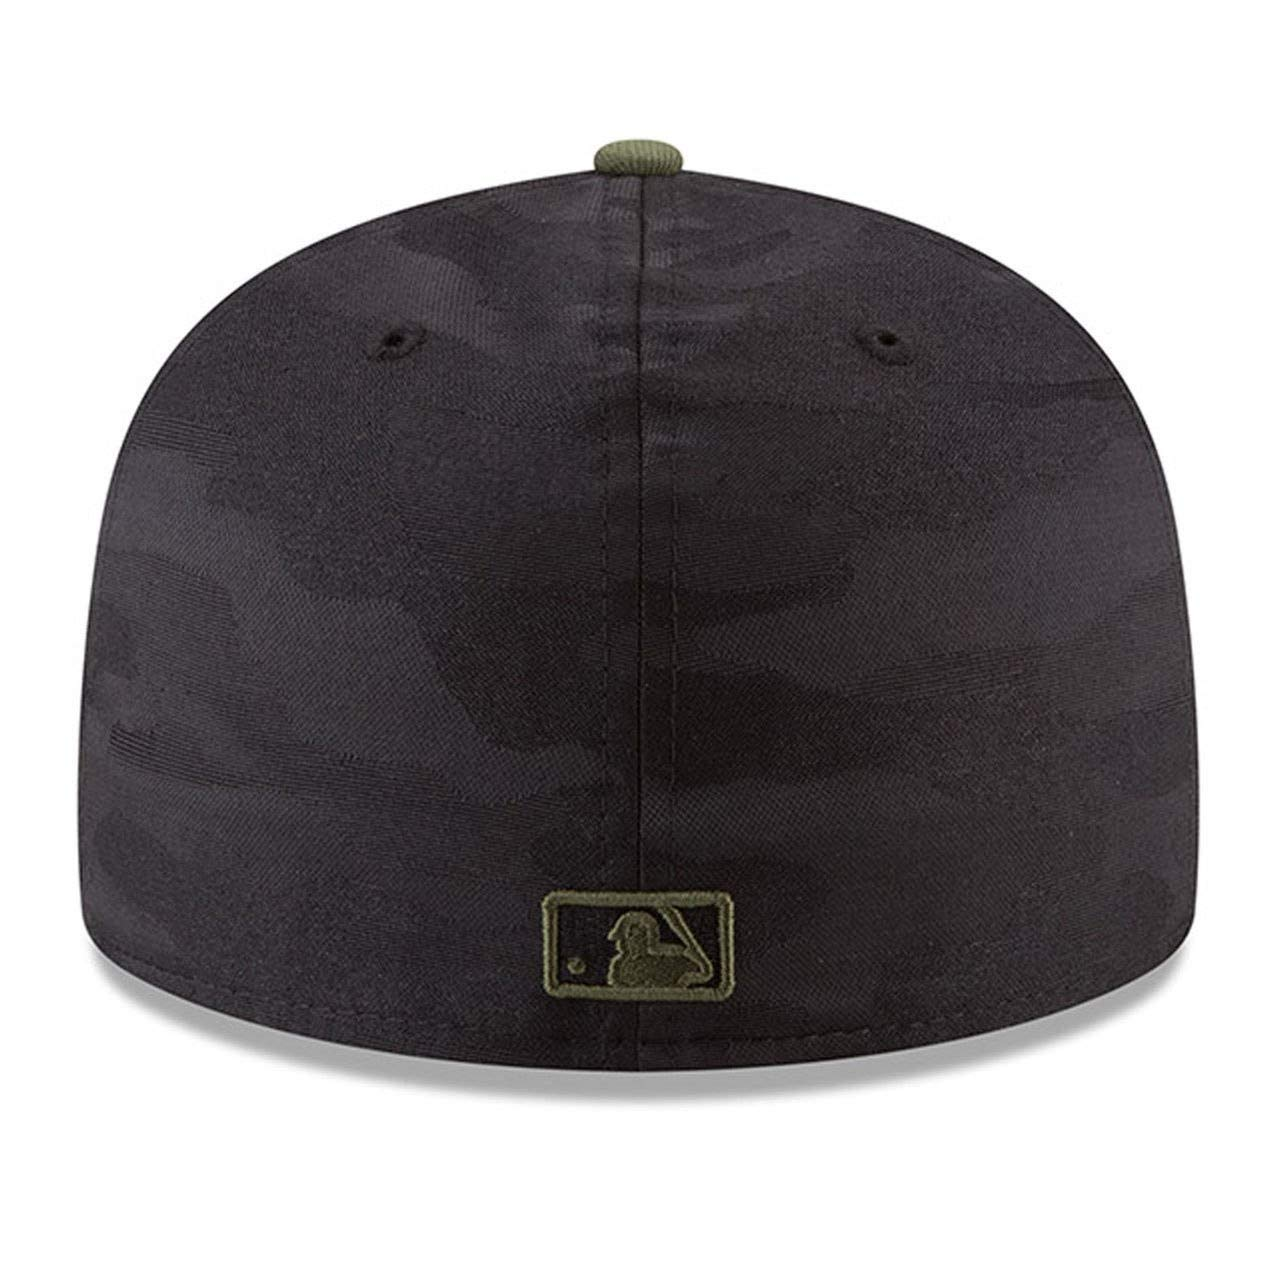 Black//Olive New Era Baltimore Orioles 2018 Memorial Day On-Field 59FIFTY Fitted Hat